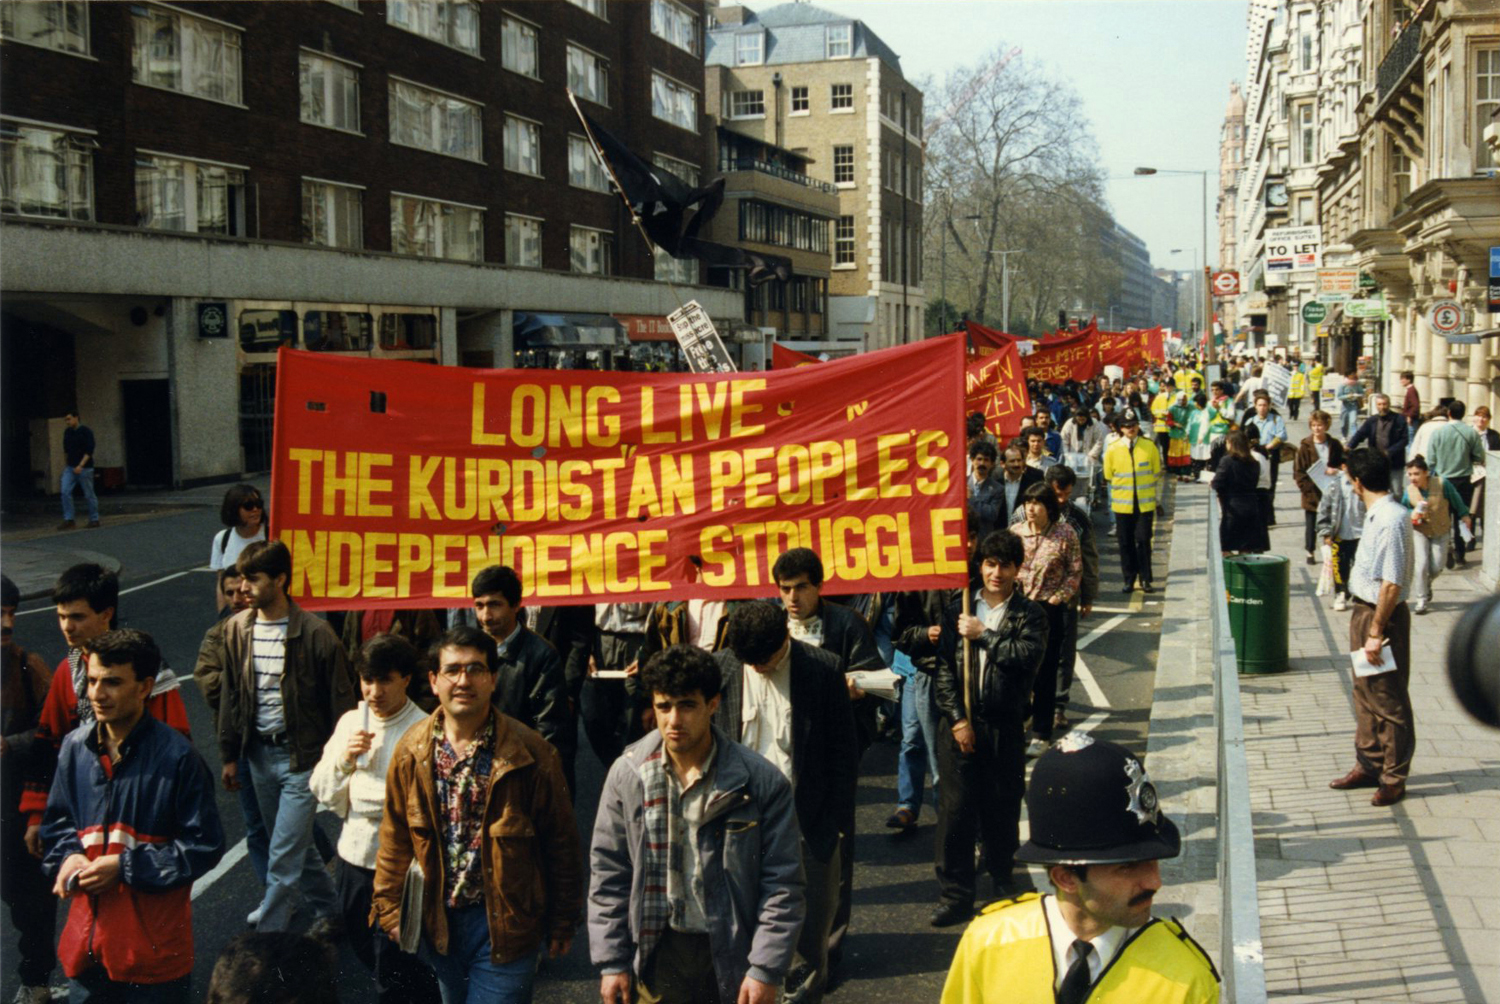 Demonstration in London against attacks on the Kurds, 1991